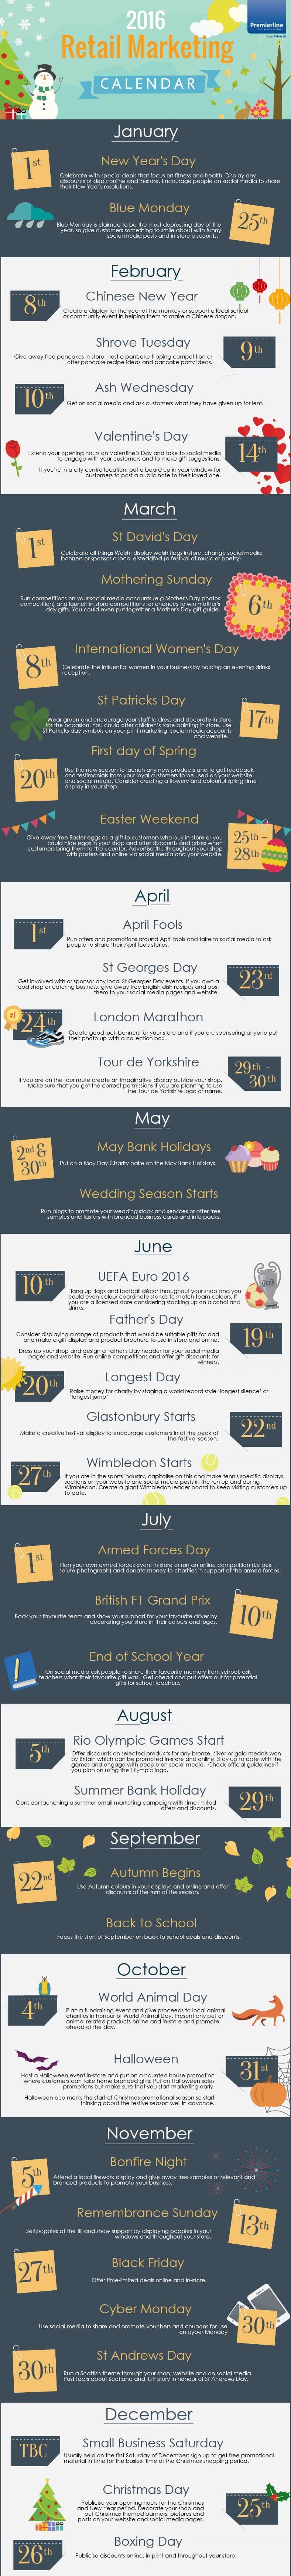 2016 events calendar for uk retailers